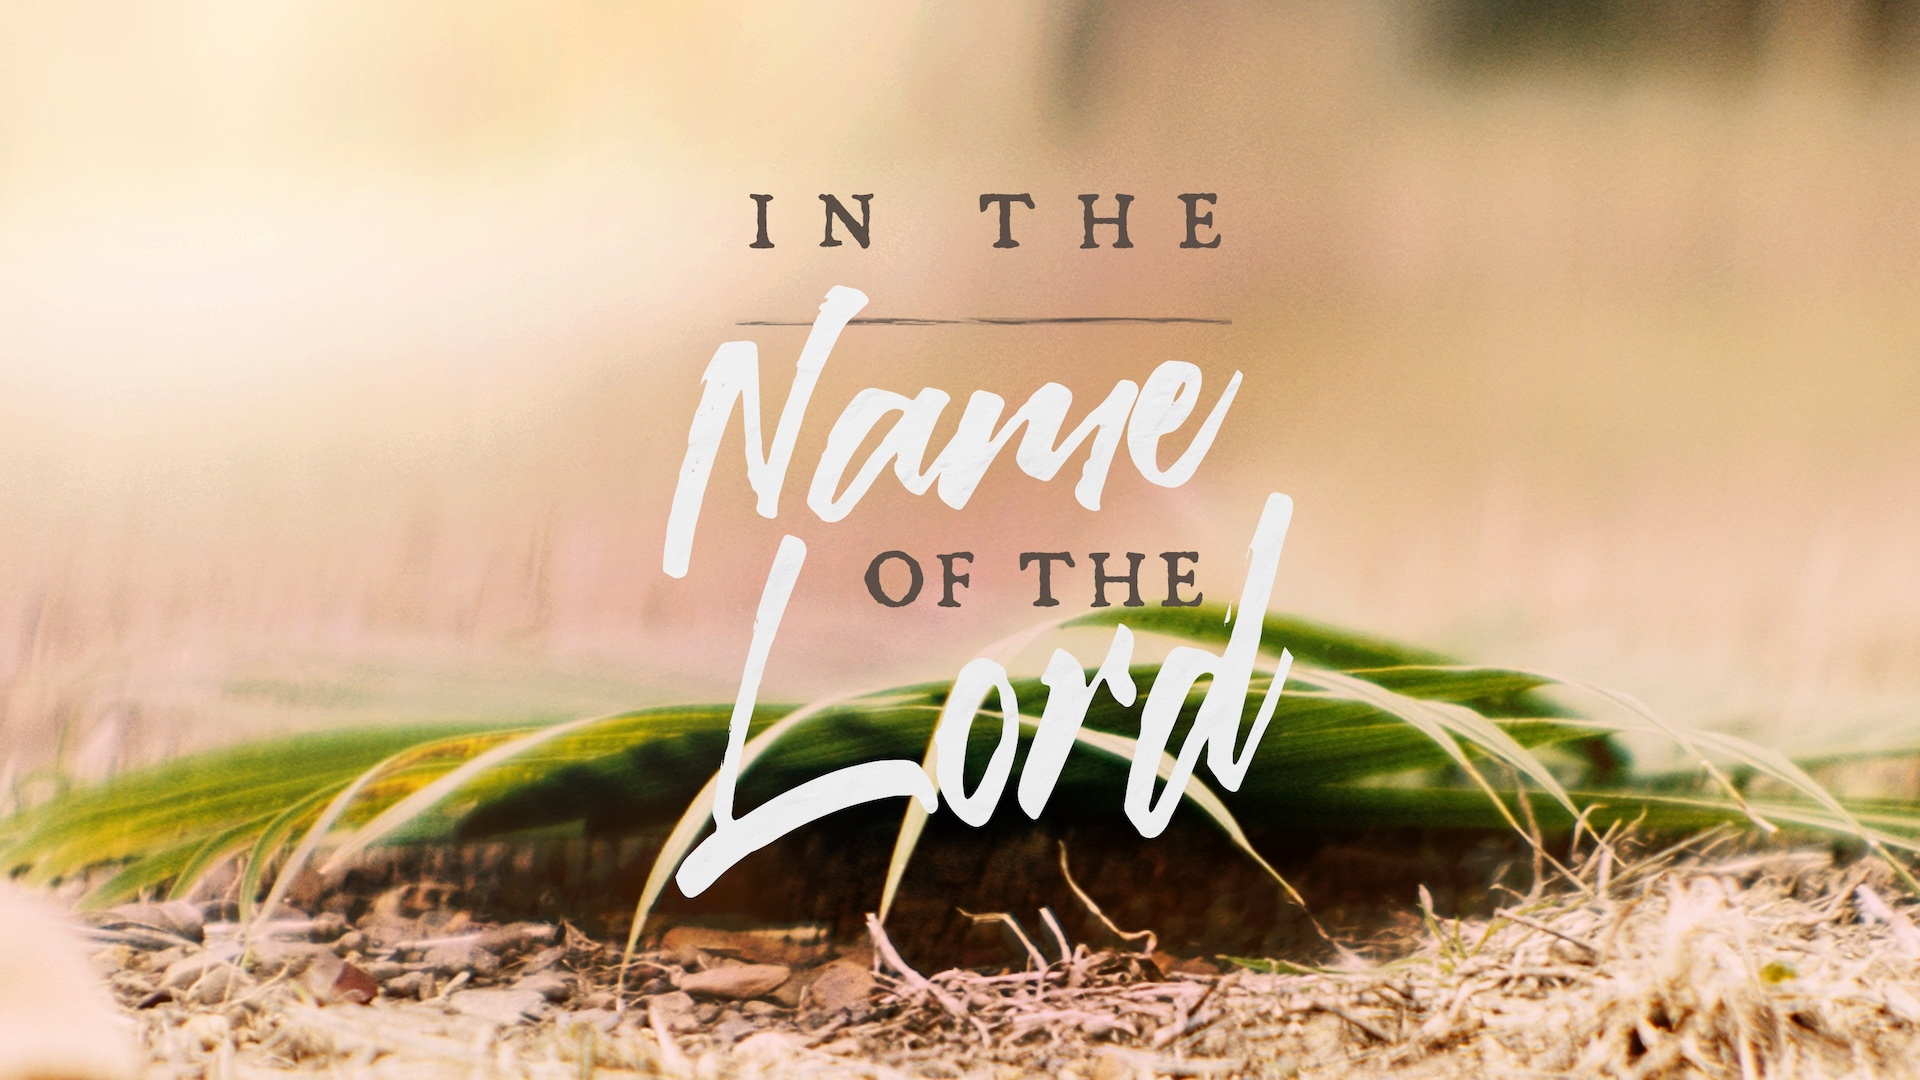 In the Name of the Lord